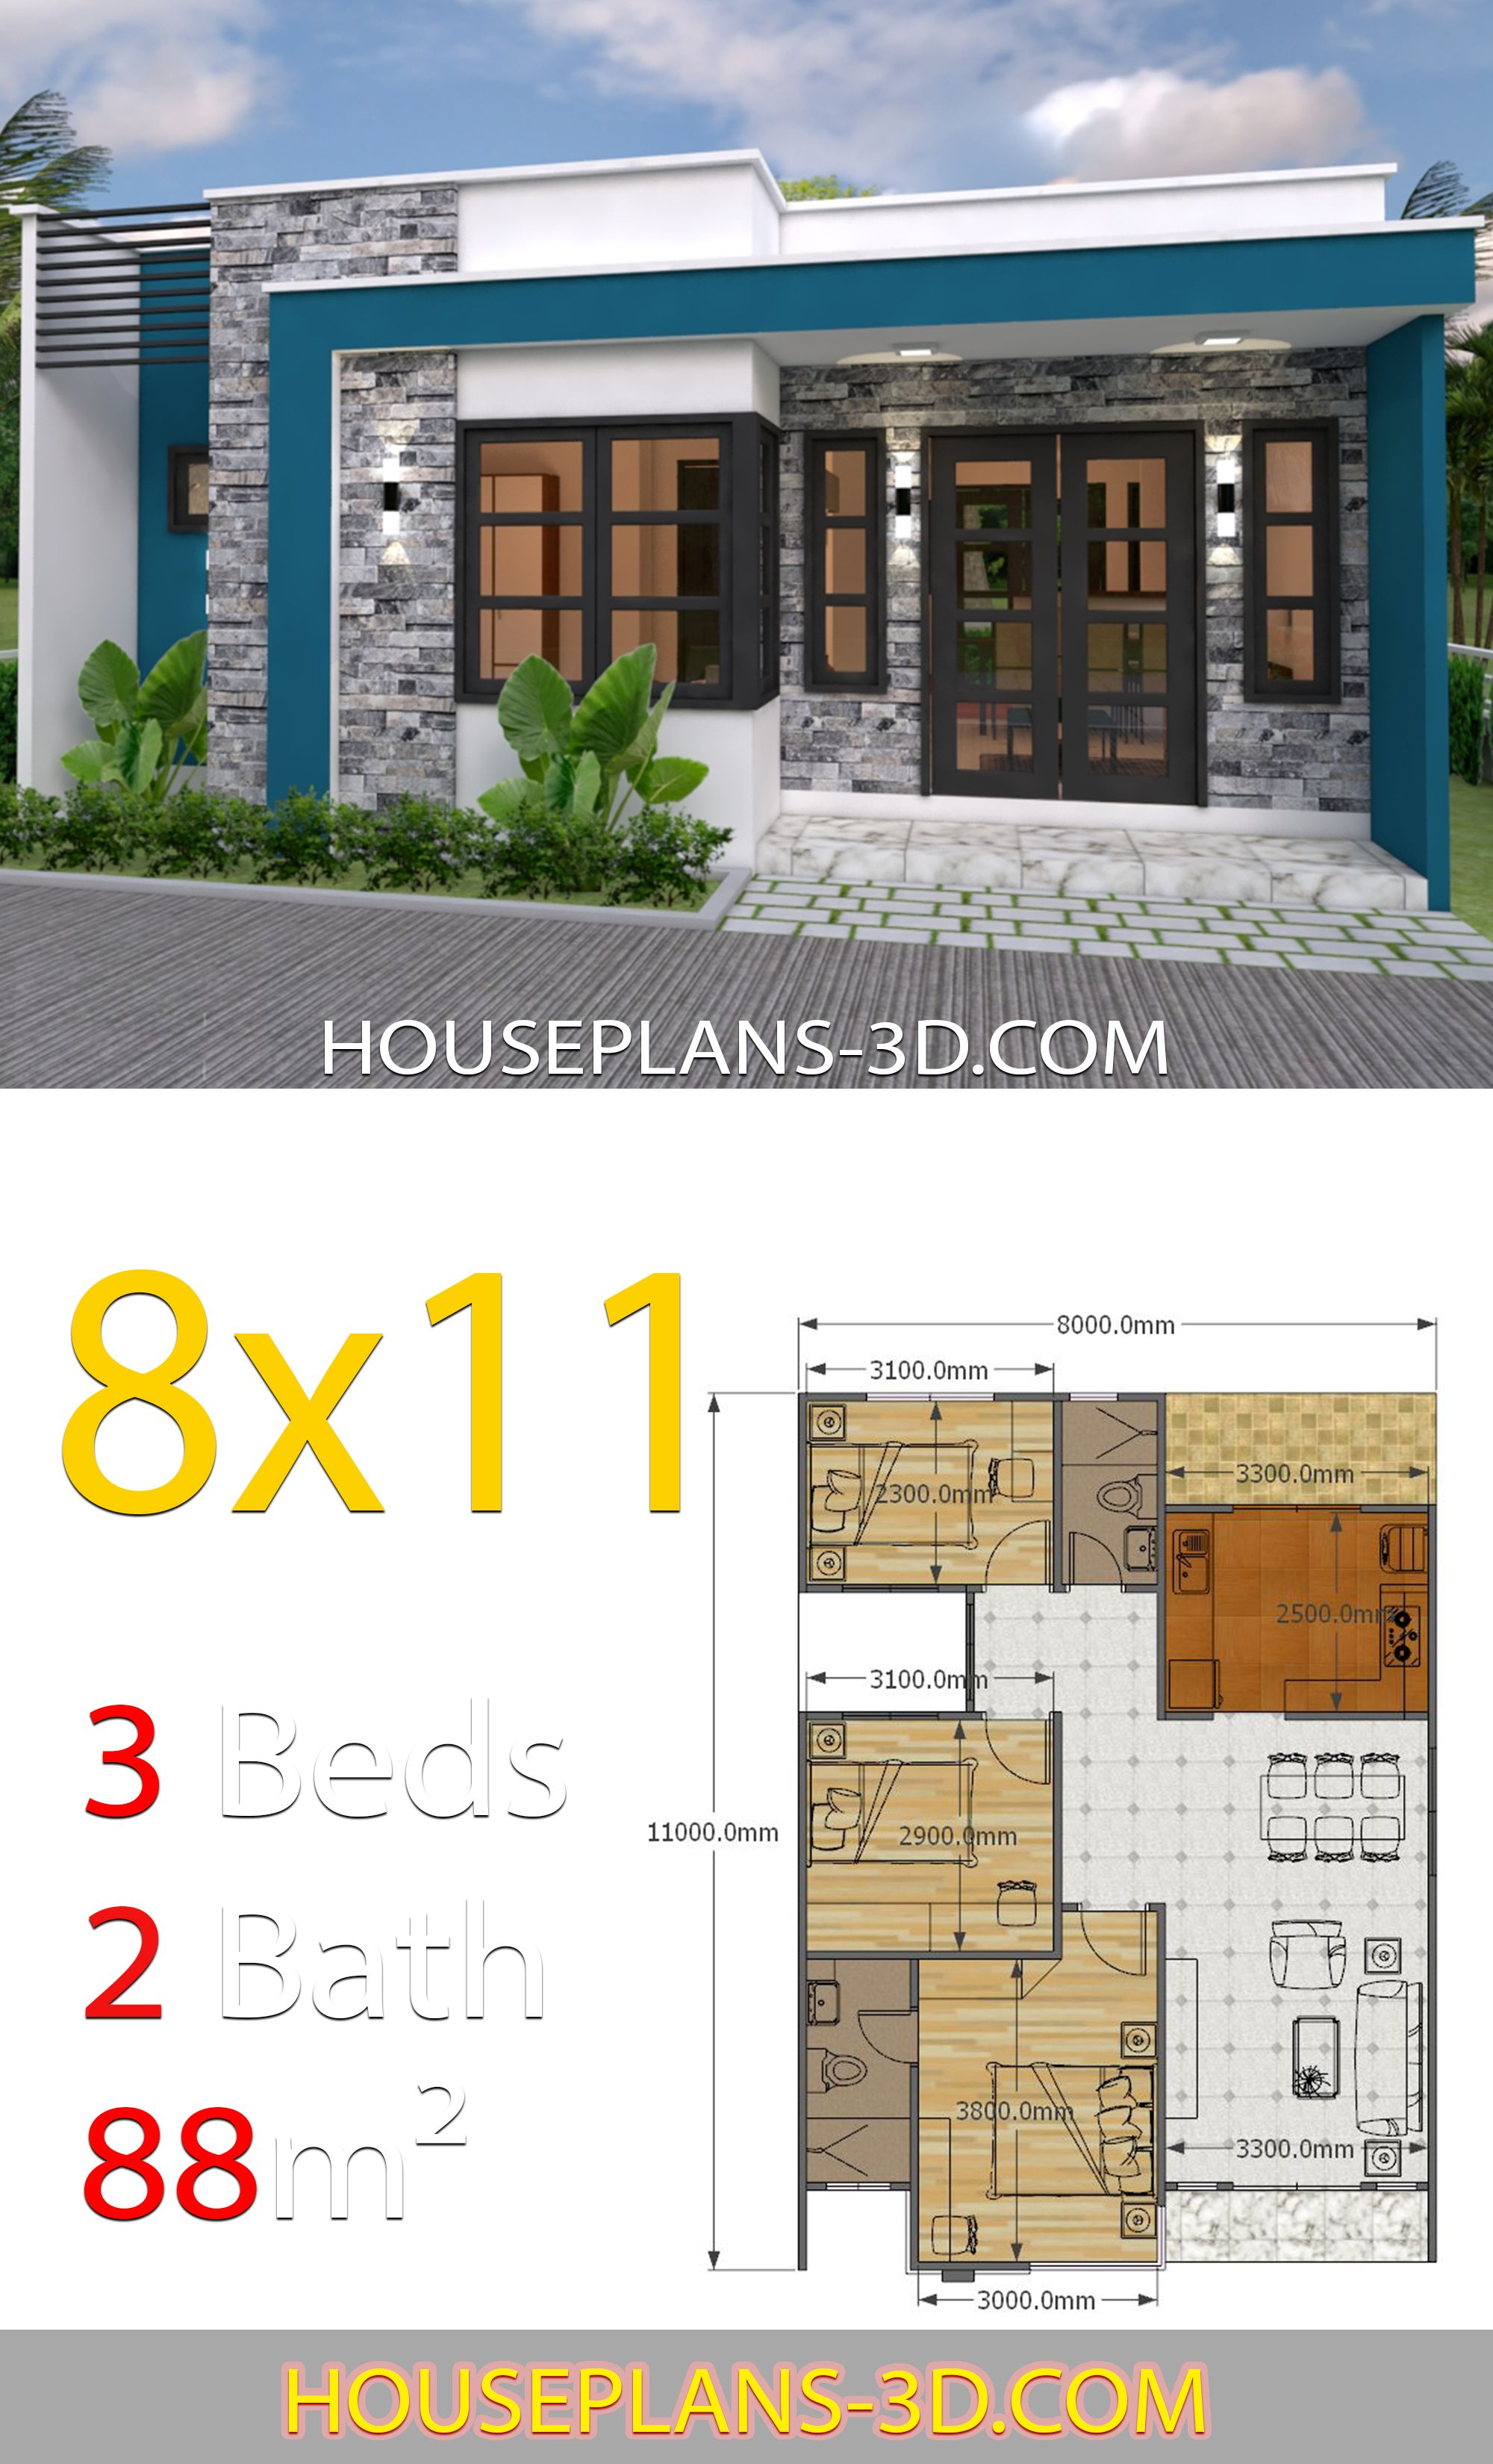 House Design 8x11 With 3 Bedrooms Full Plans House Plans 3d Bungalow House Plans House Plans House Construction Plan